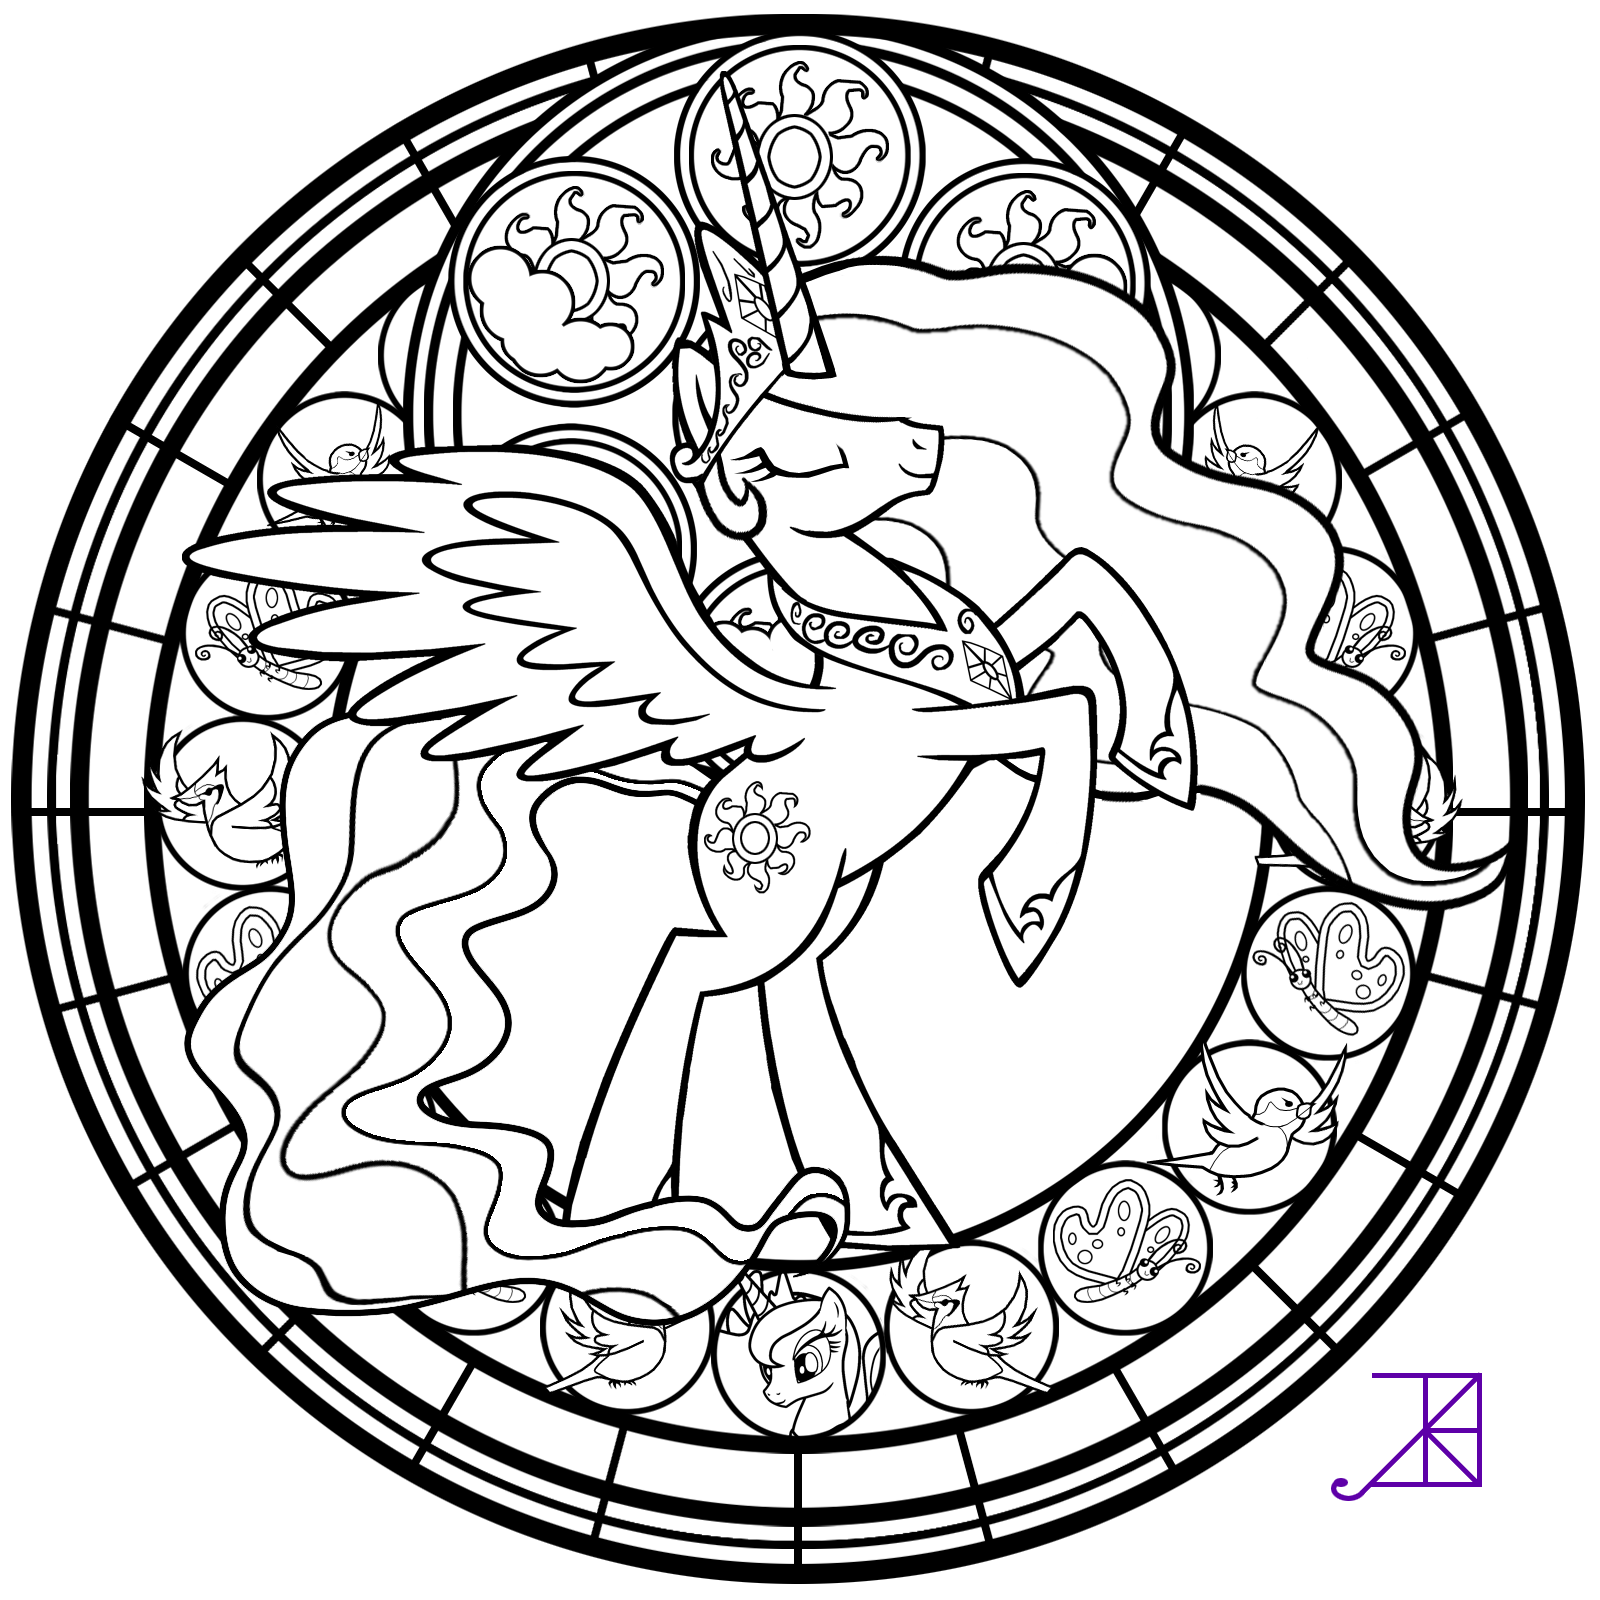 christion stain glass coloring pages | Christian Stained Glass Coloring Pages Coloring Pages